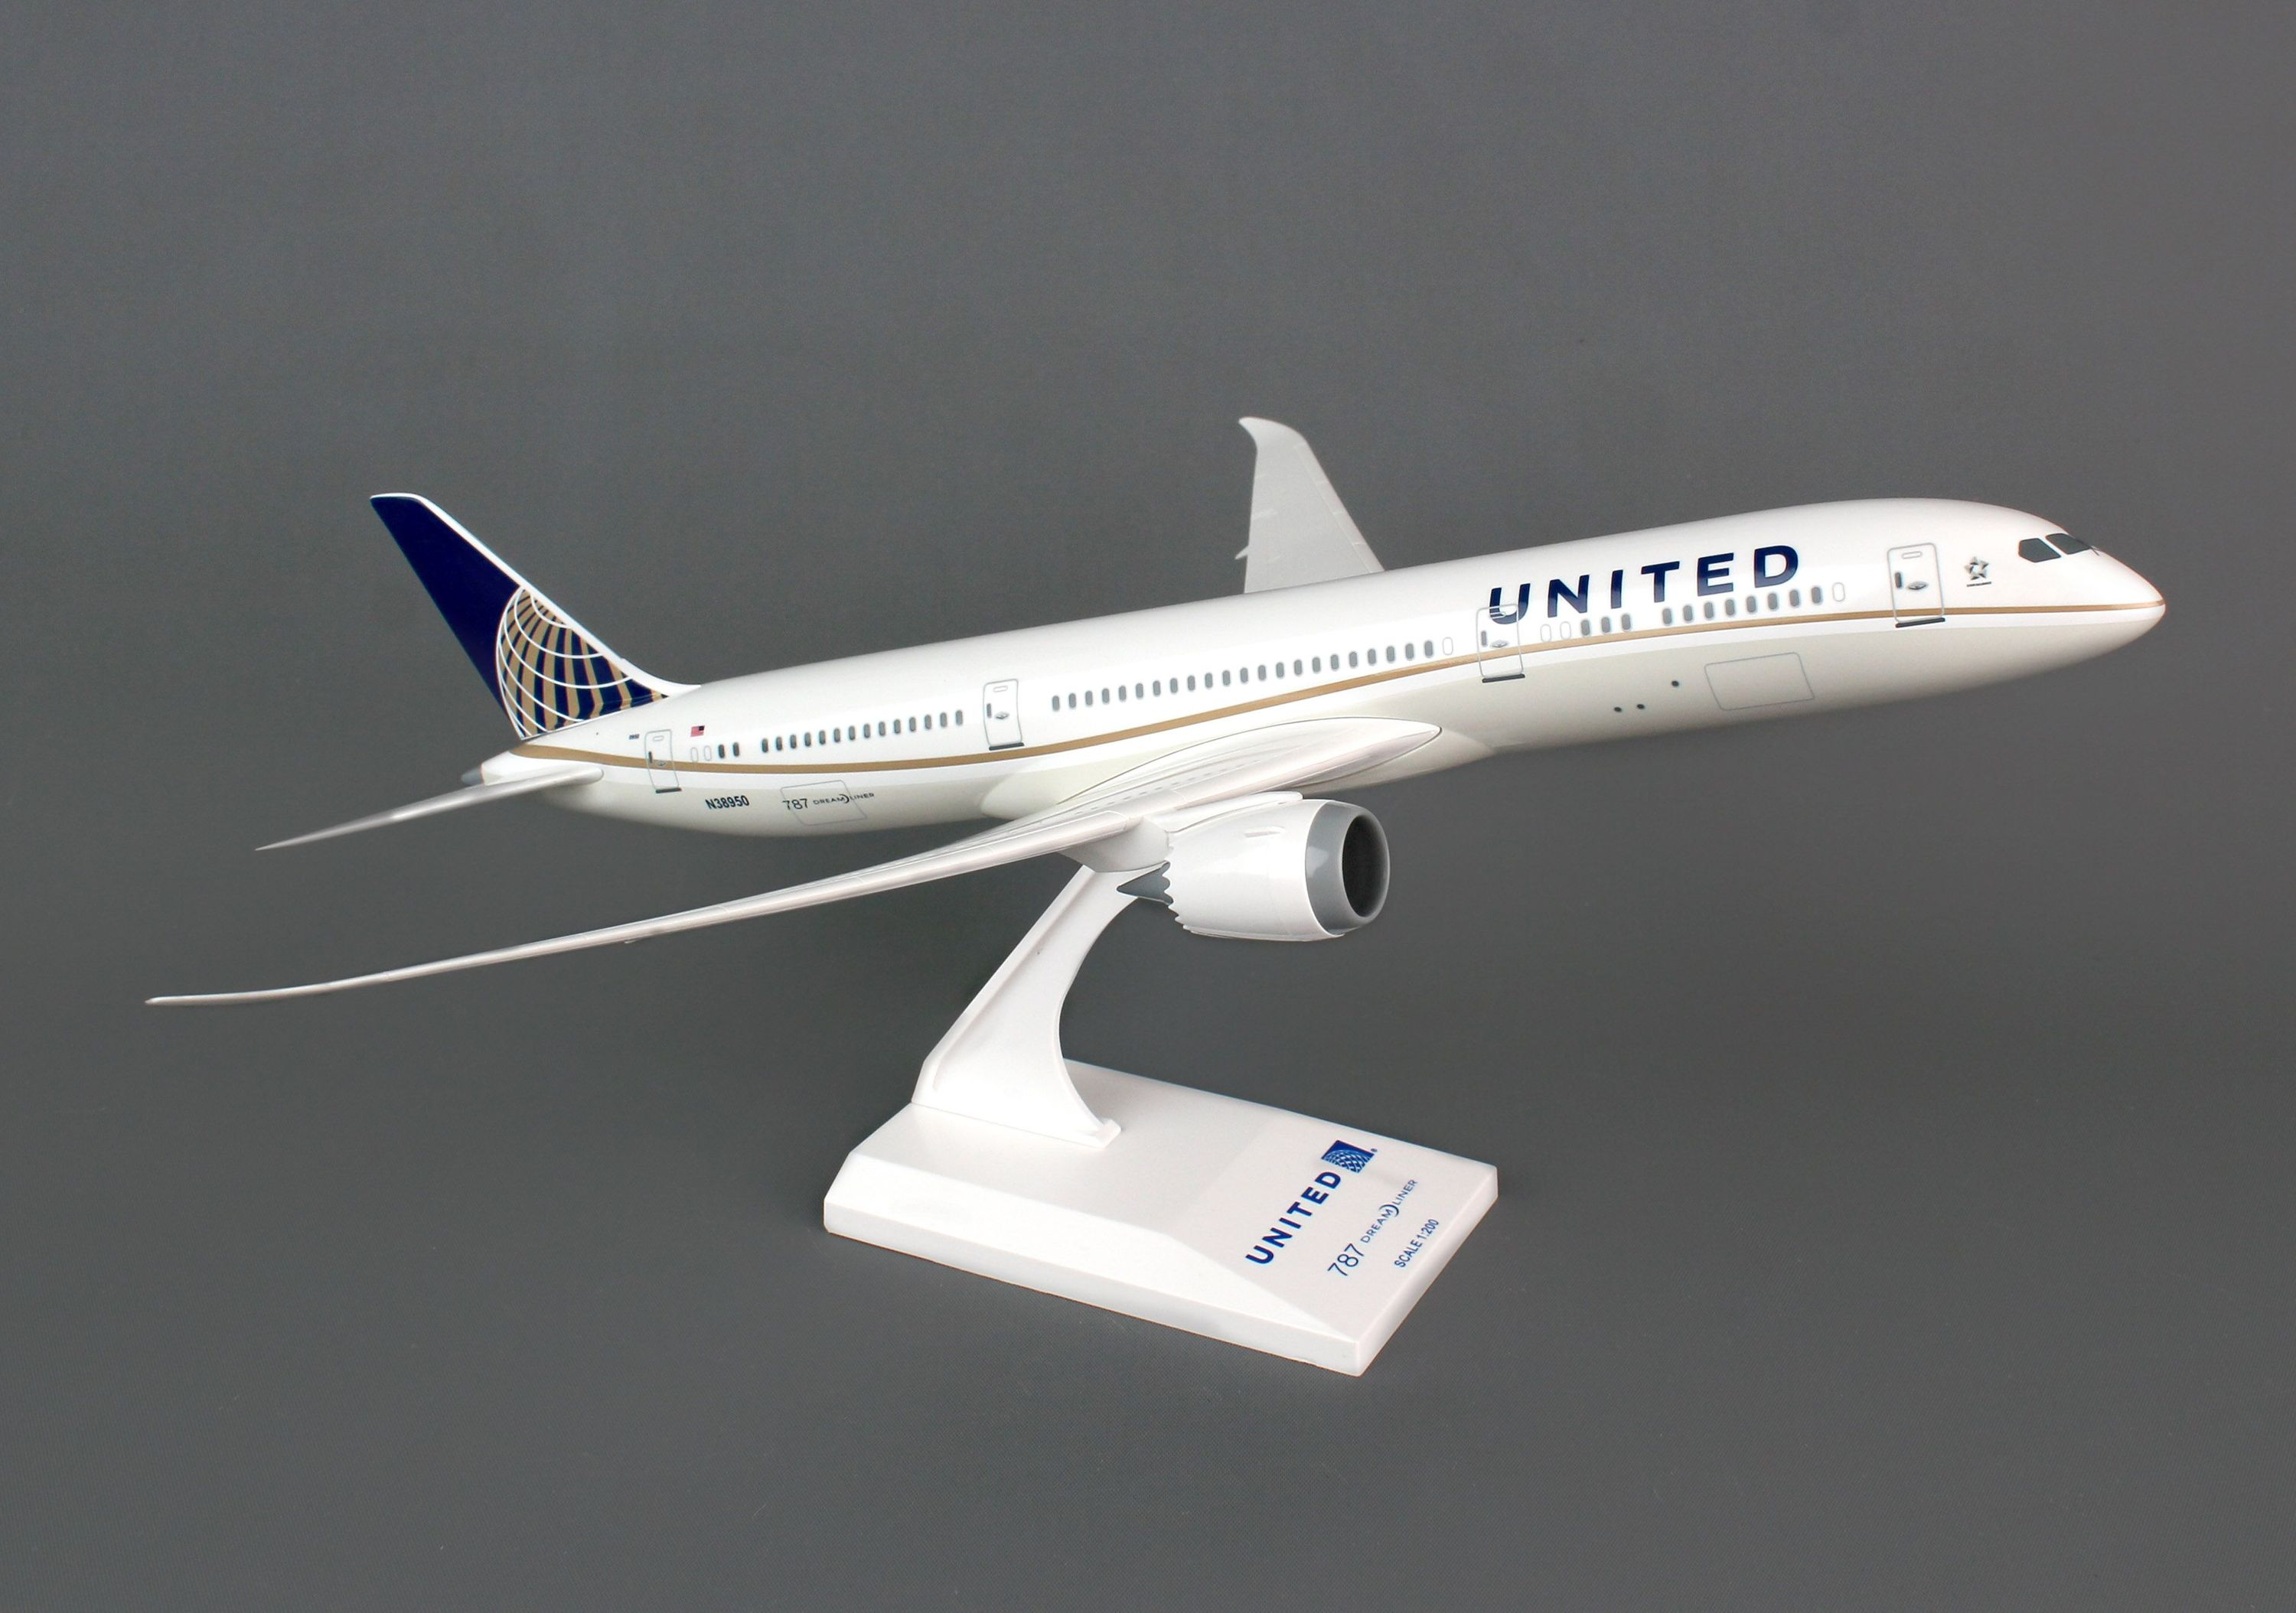 SkyMarks Flugzeugmodell United Airlines Boeing 787-9 Maßstab 1:200